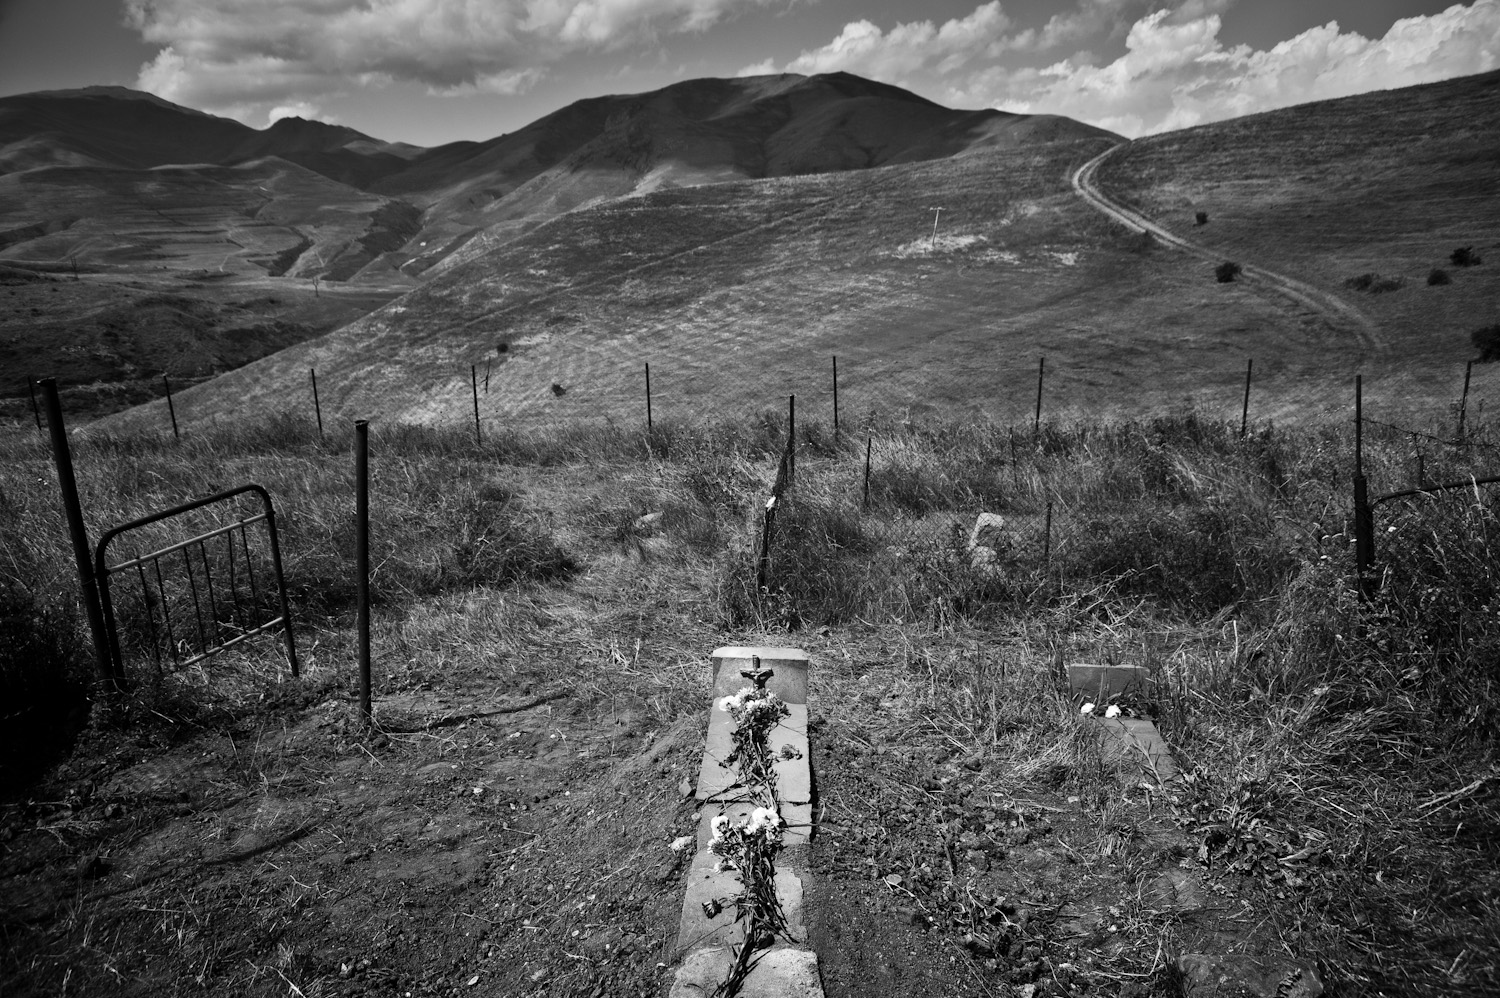 Vladimir Gabrielyan's final resting place in the hills above Dastakert - he was 75 when he passed. He and his wife Rayisa, refugees from Baku, moved to Dastakert during the Karabakh war. The couple had no children.